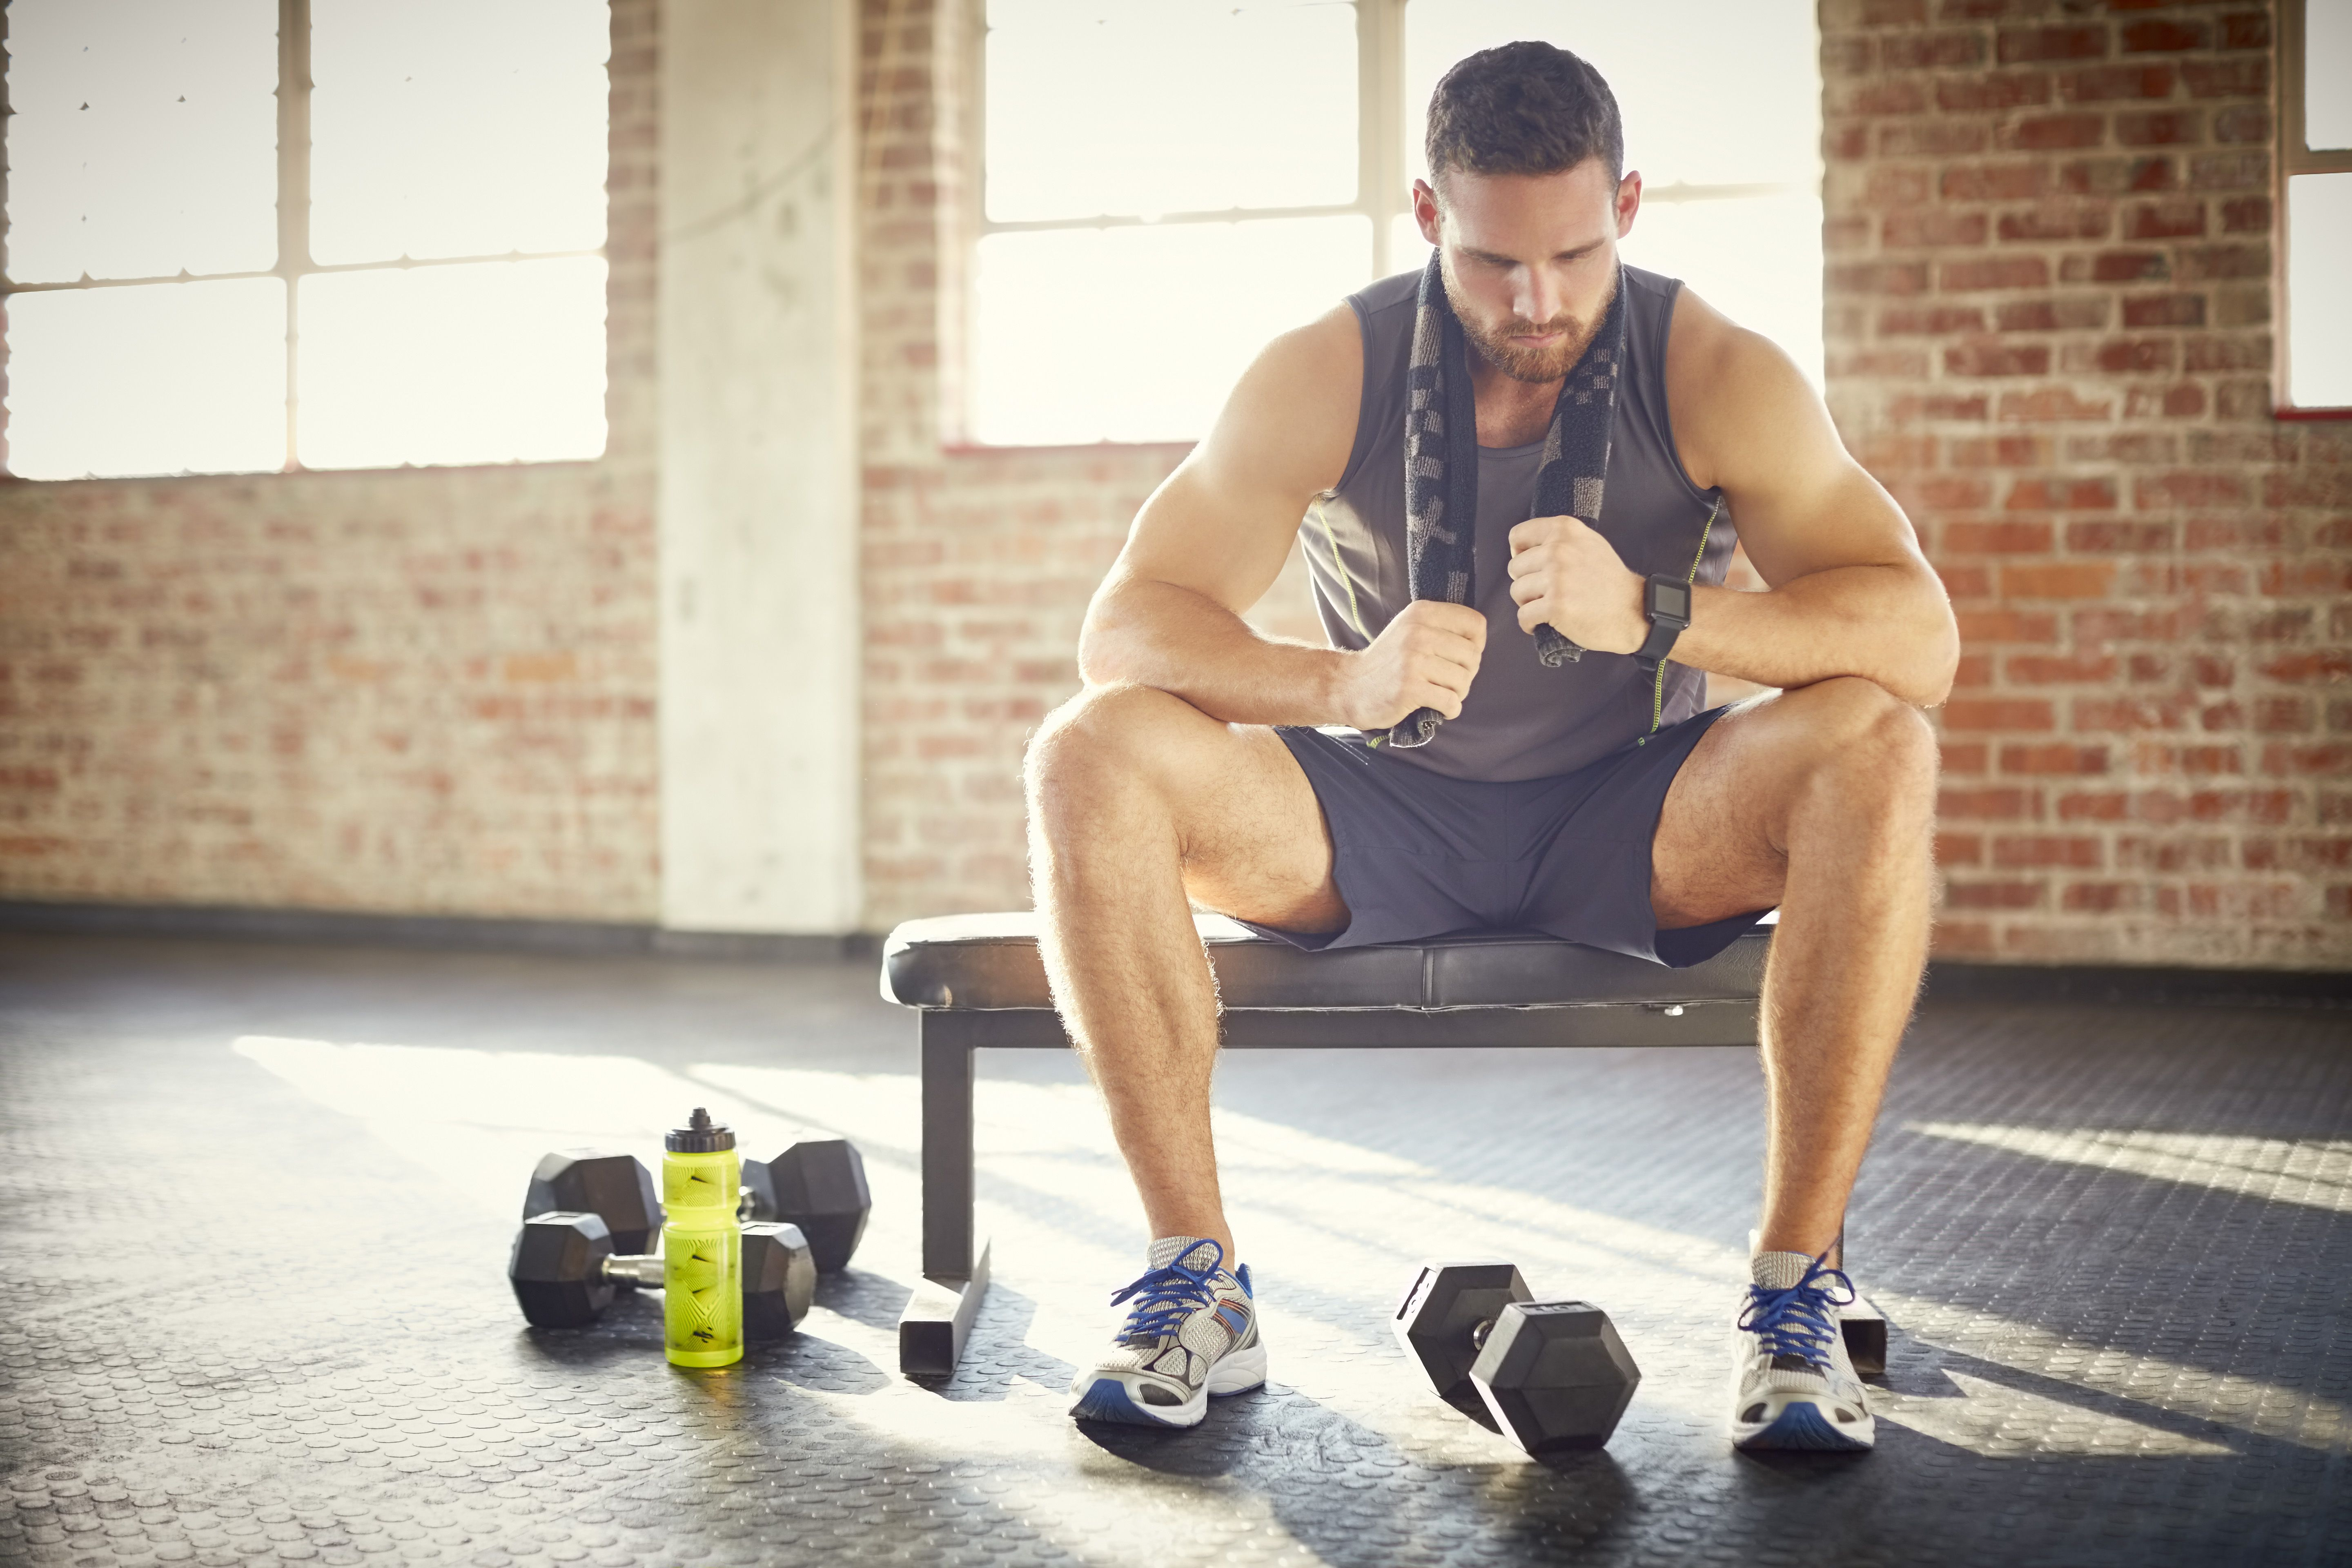 8 of the Best Weight Benches To Use at Home